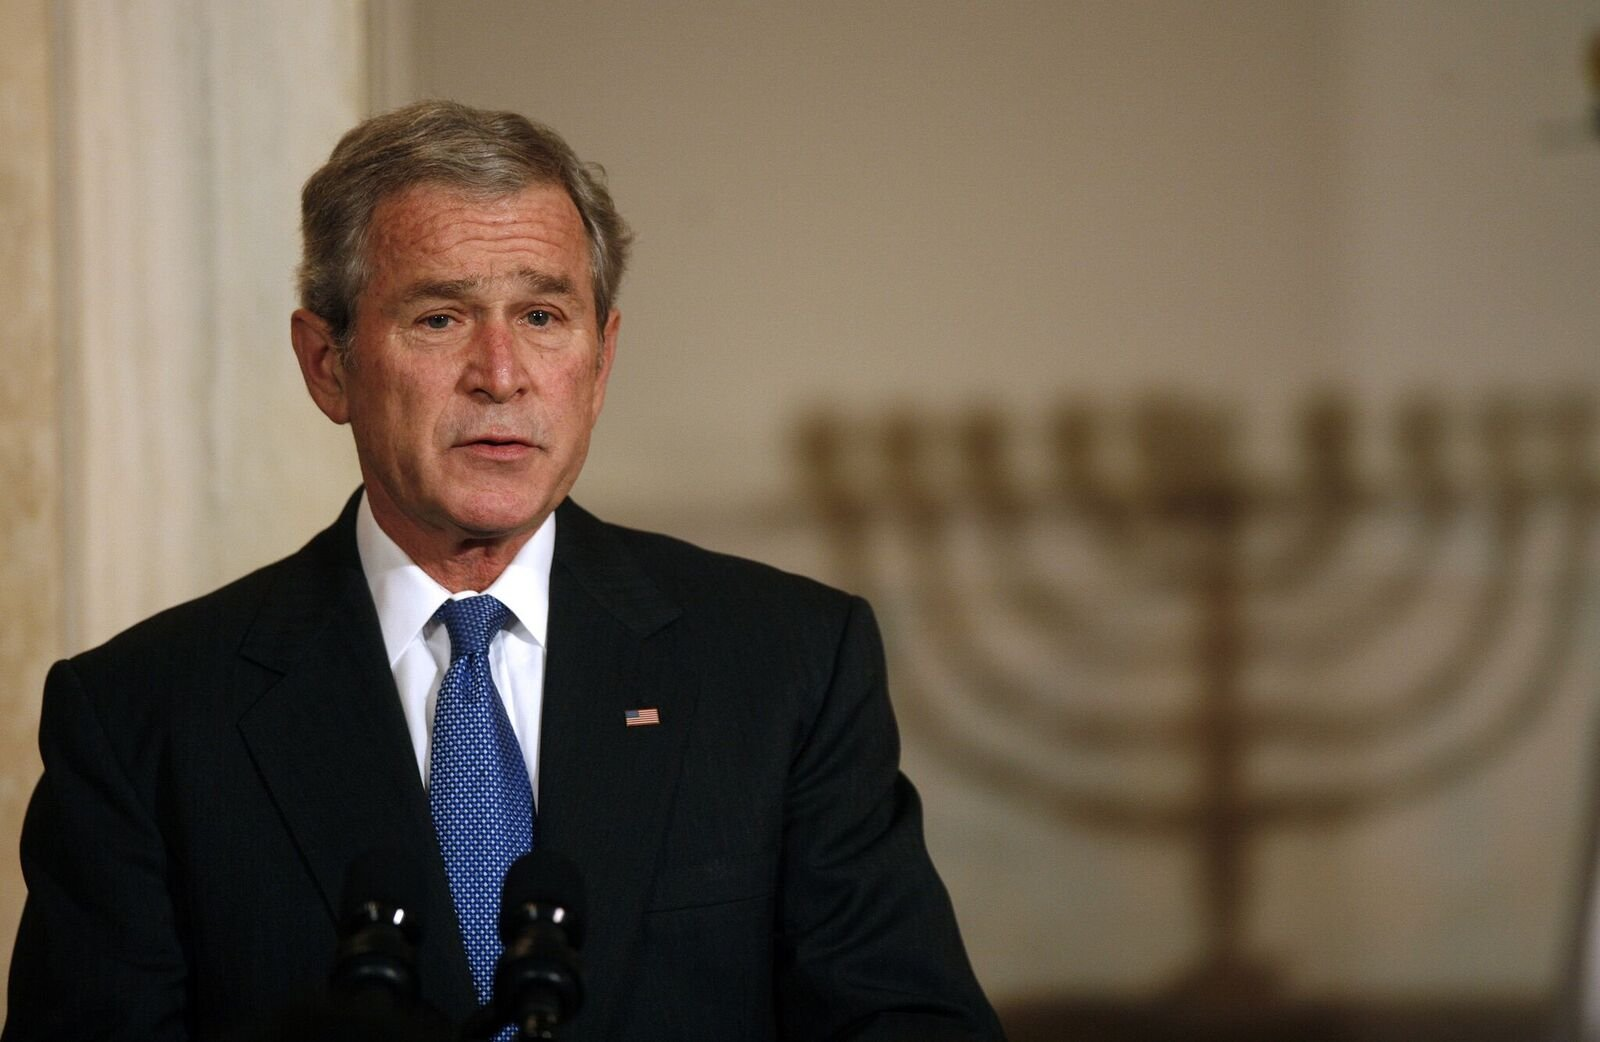 George W. Bush at a Hanukkah Reception in the Grand Foyer of the White House on December 15, 2008, in Washington, DC | Photo: Getty Images